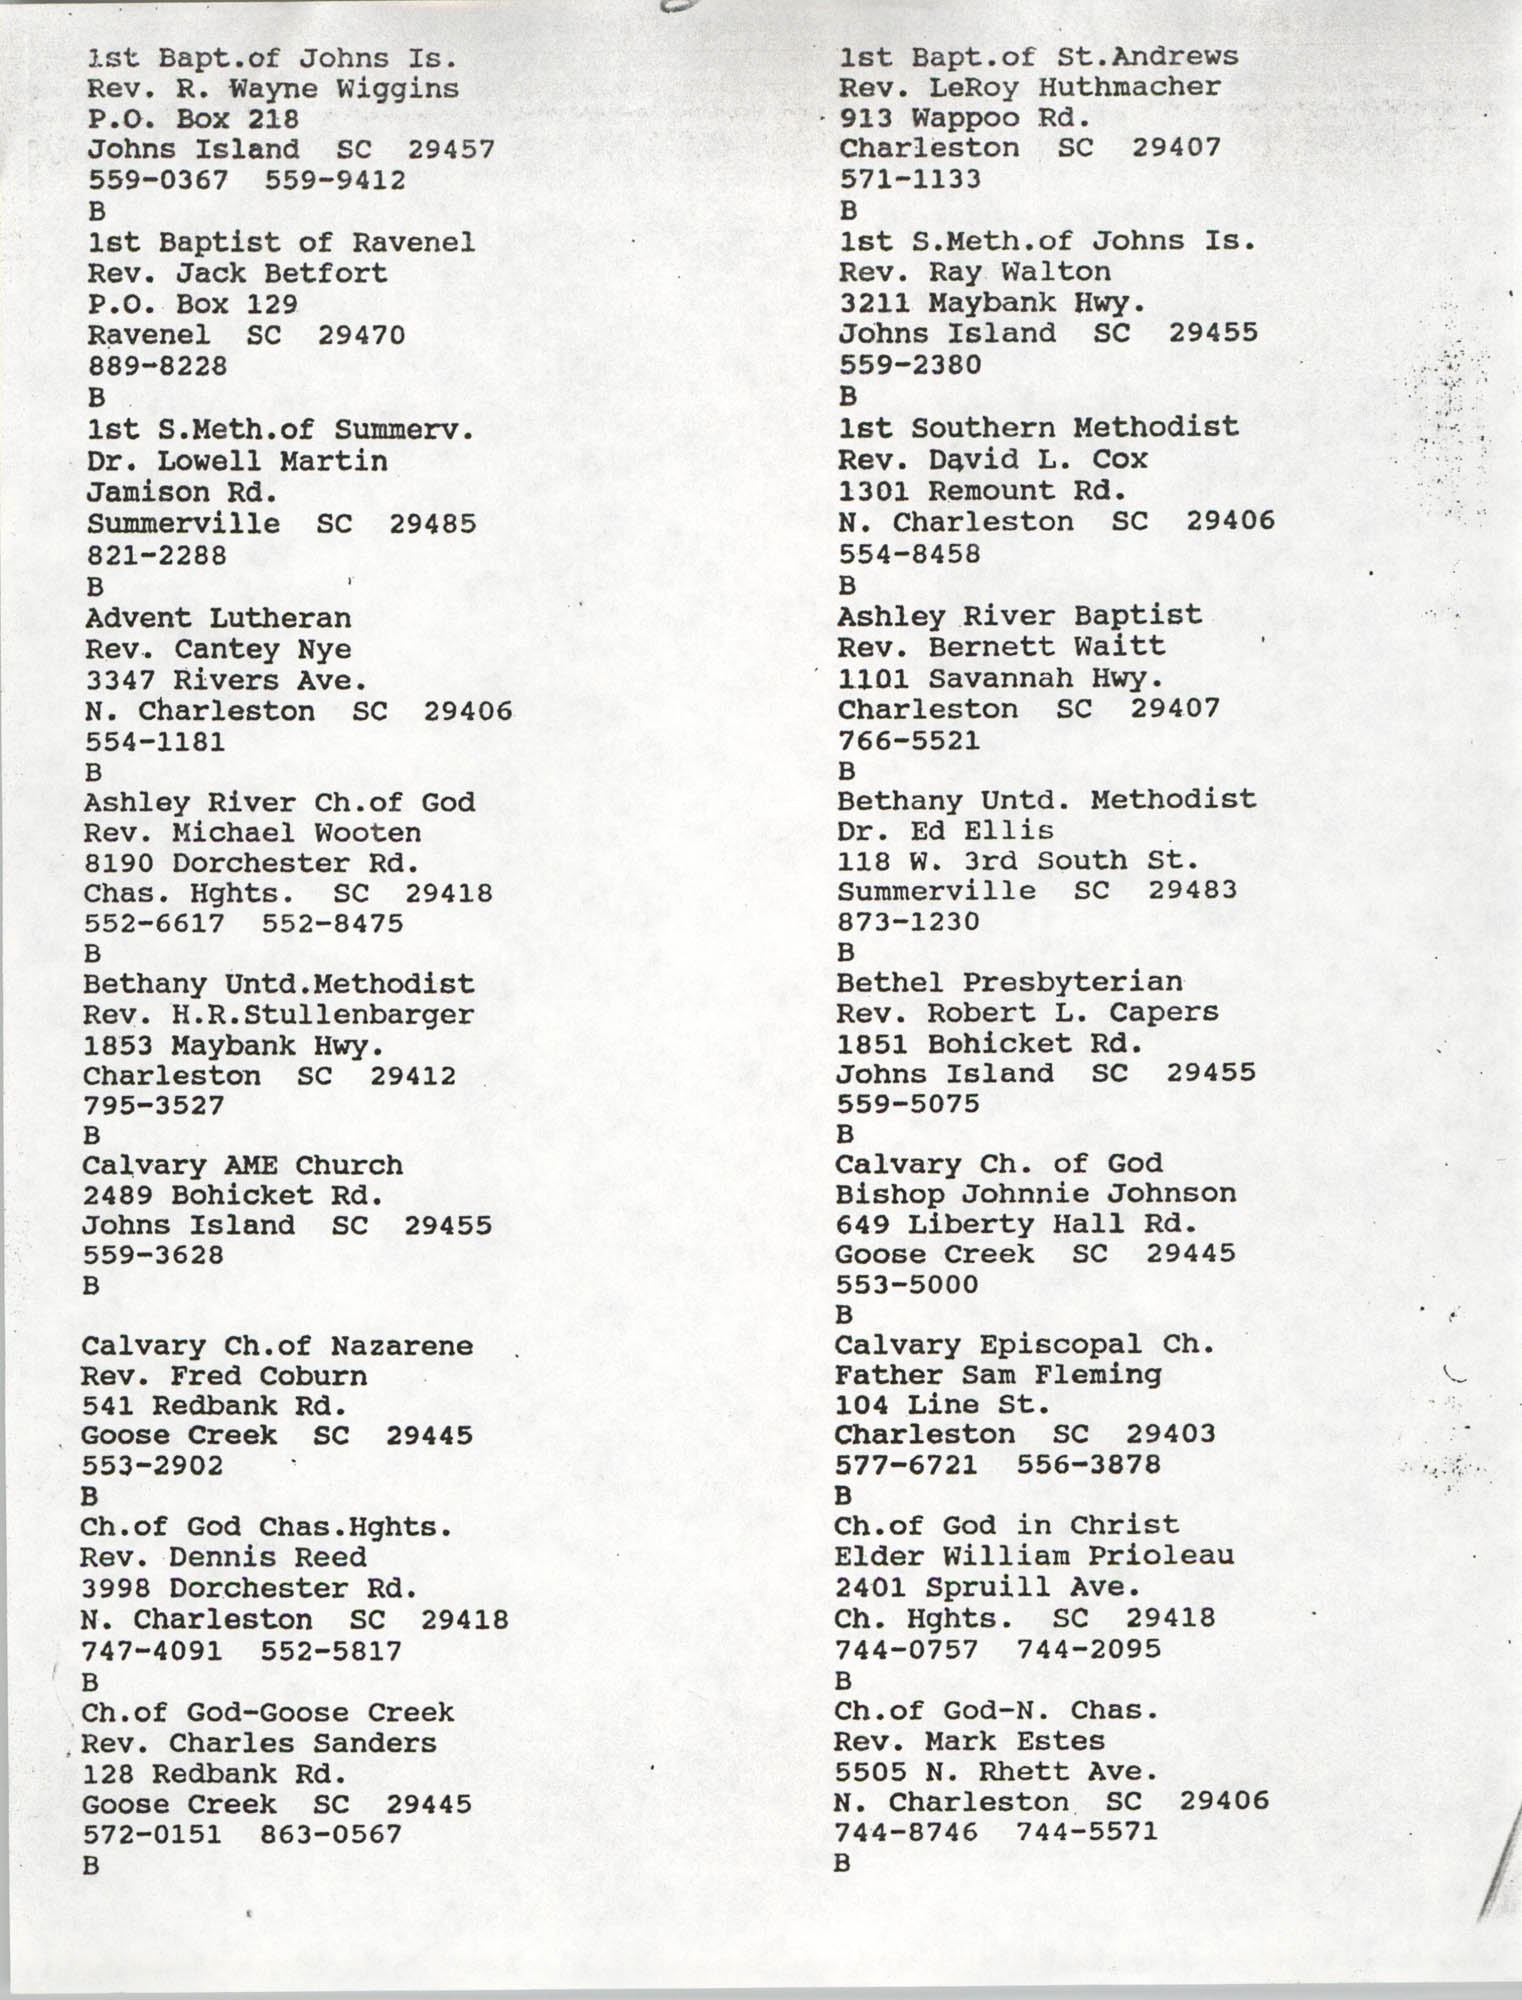 Church Contact List, Charleston Chapter of the NAACP, Page 7